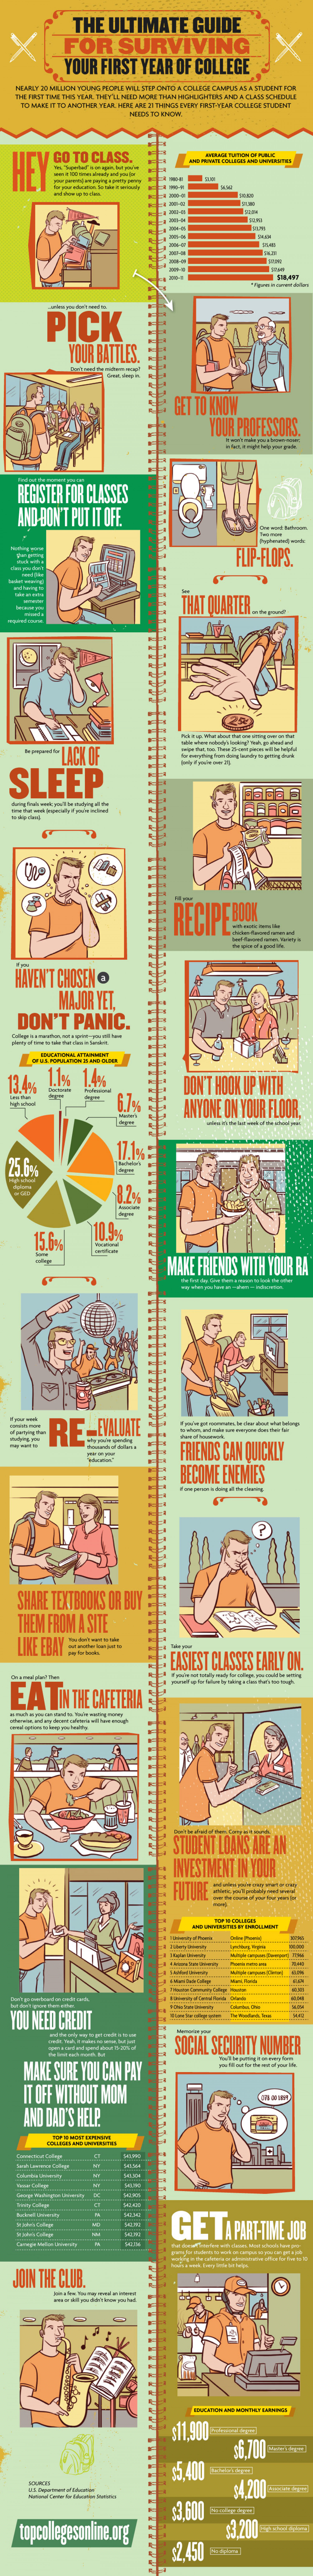 The Ultimate Guide For Surviving Your First Year Of College Infographic